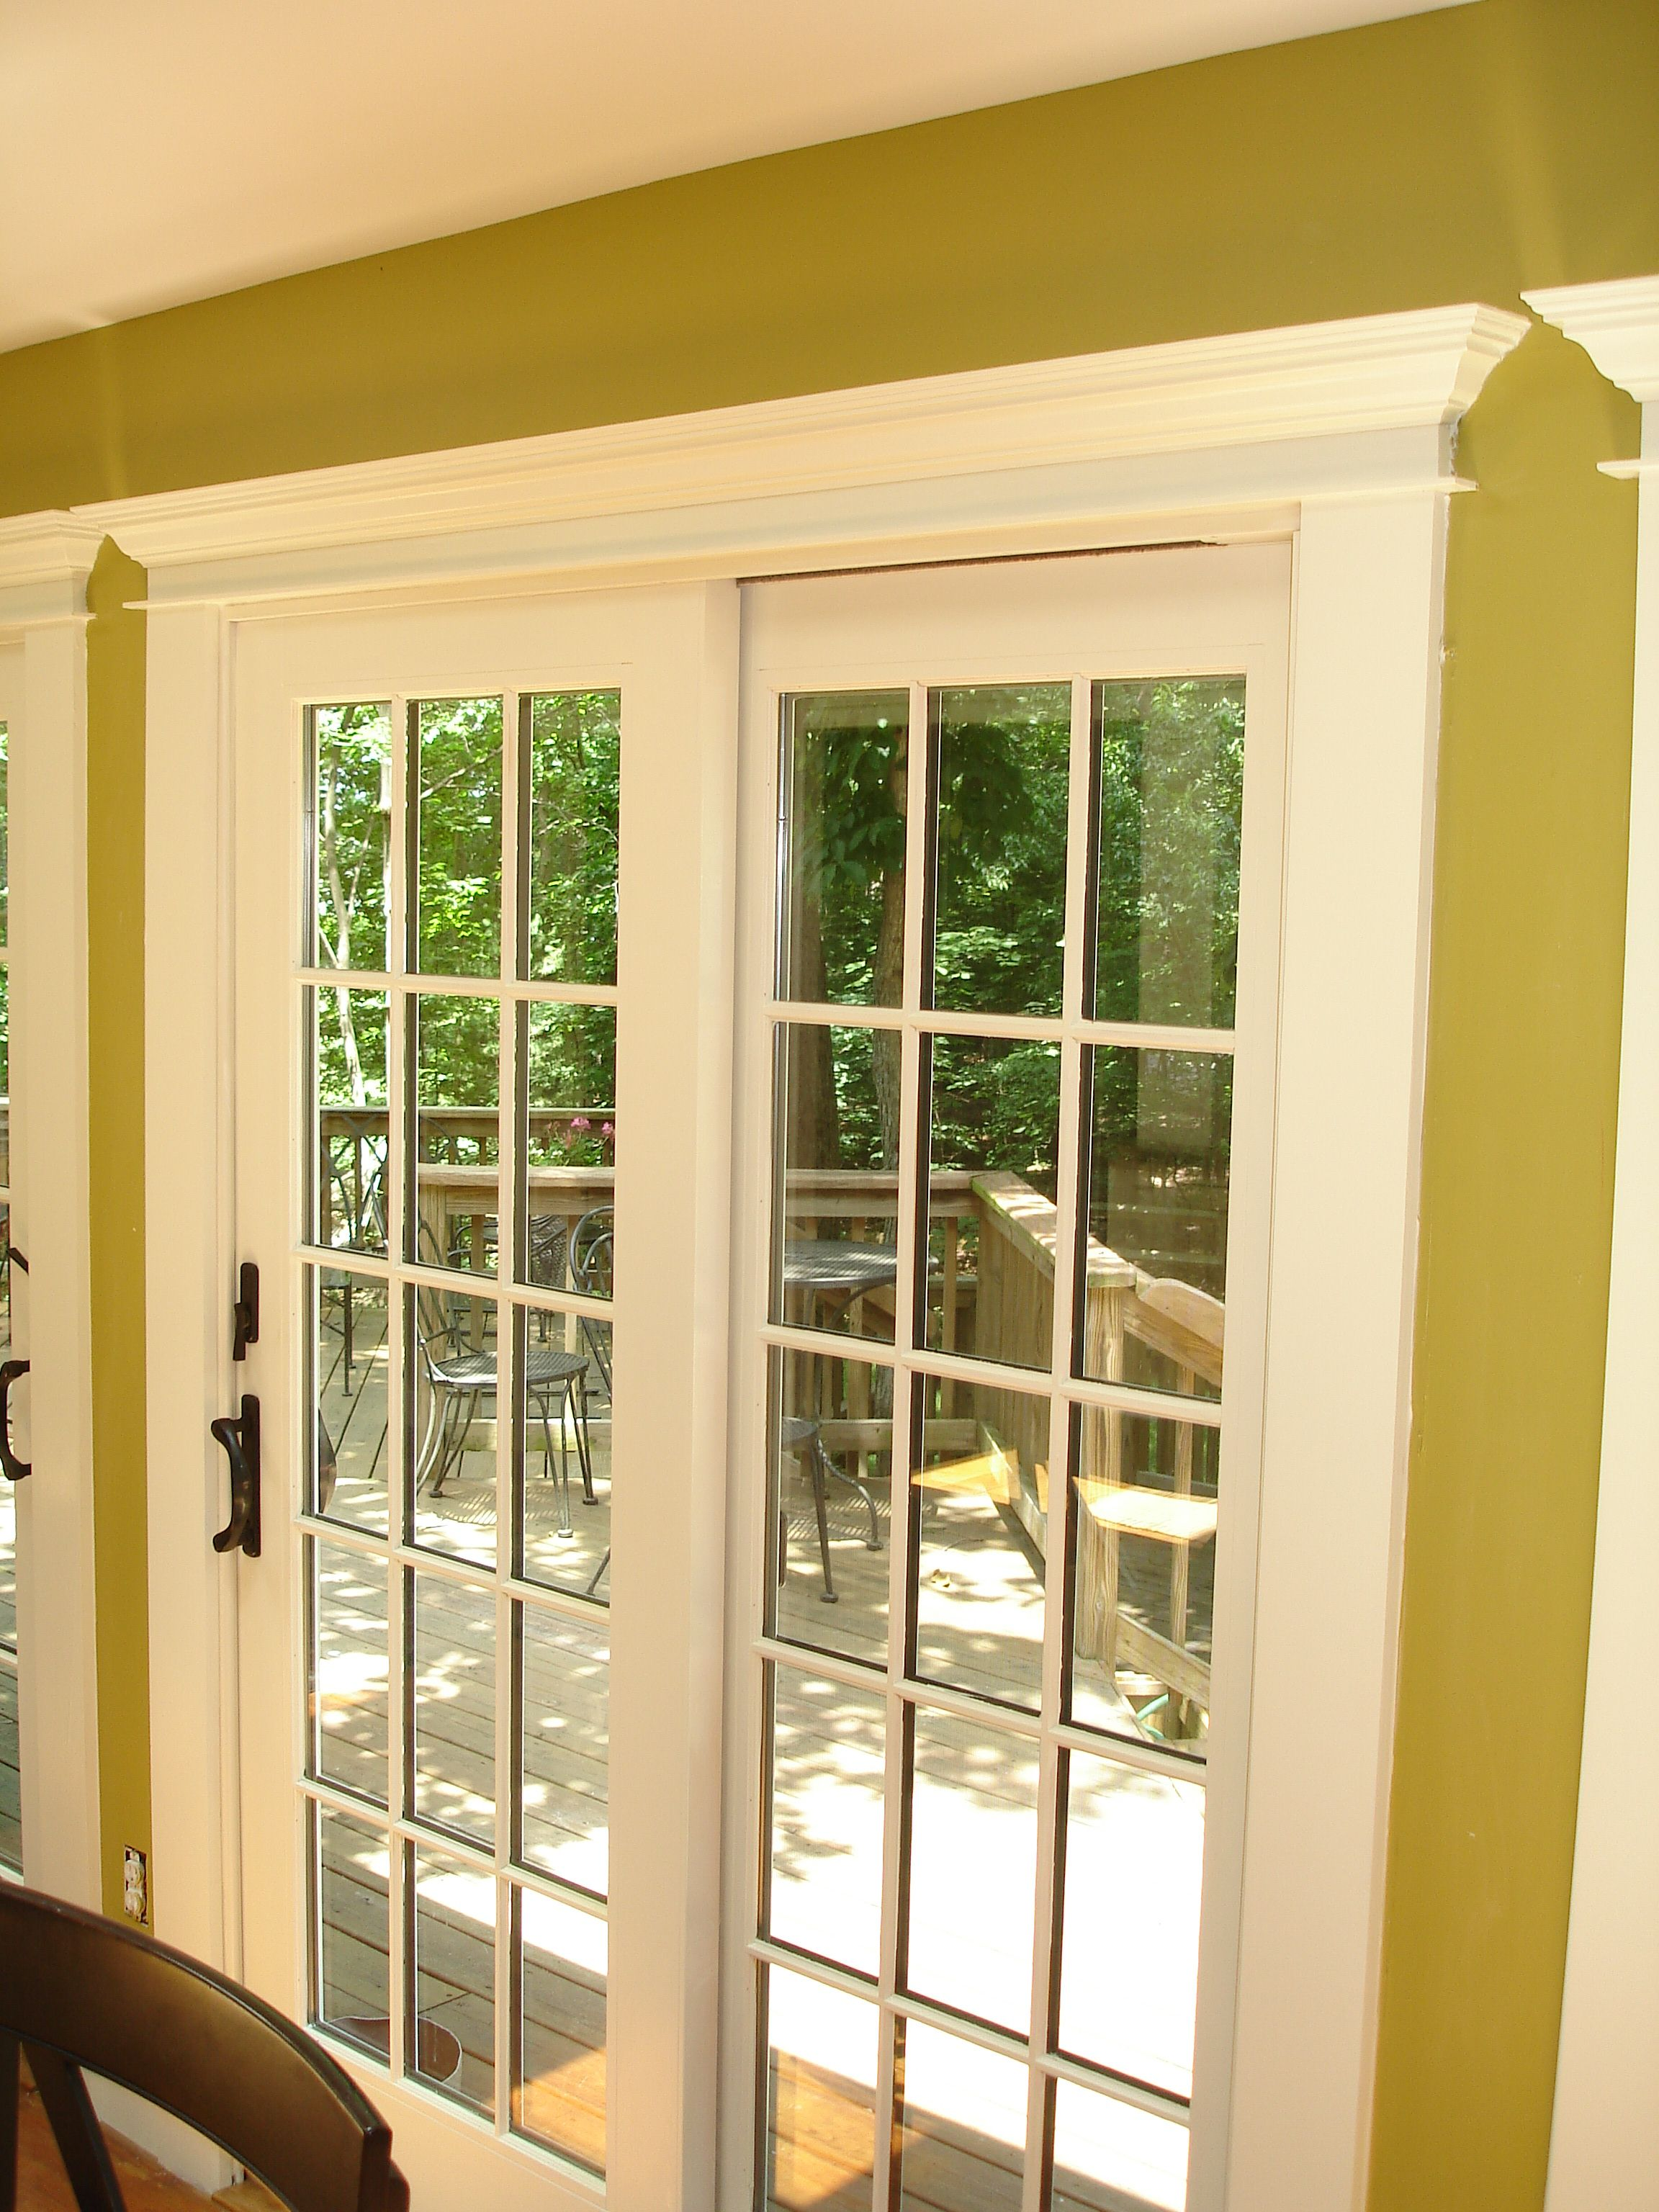 Anderson 400 Series Door Sliding French Doors Patio French